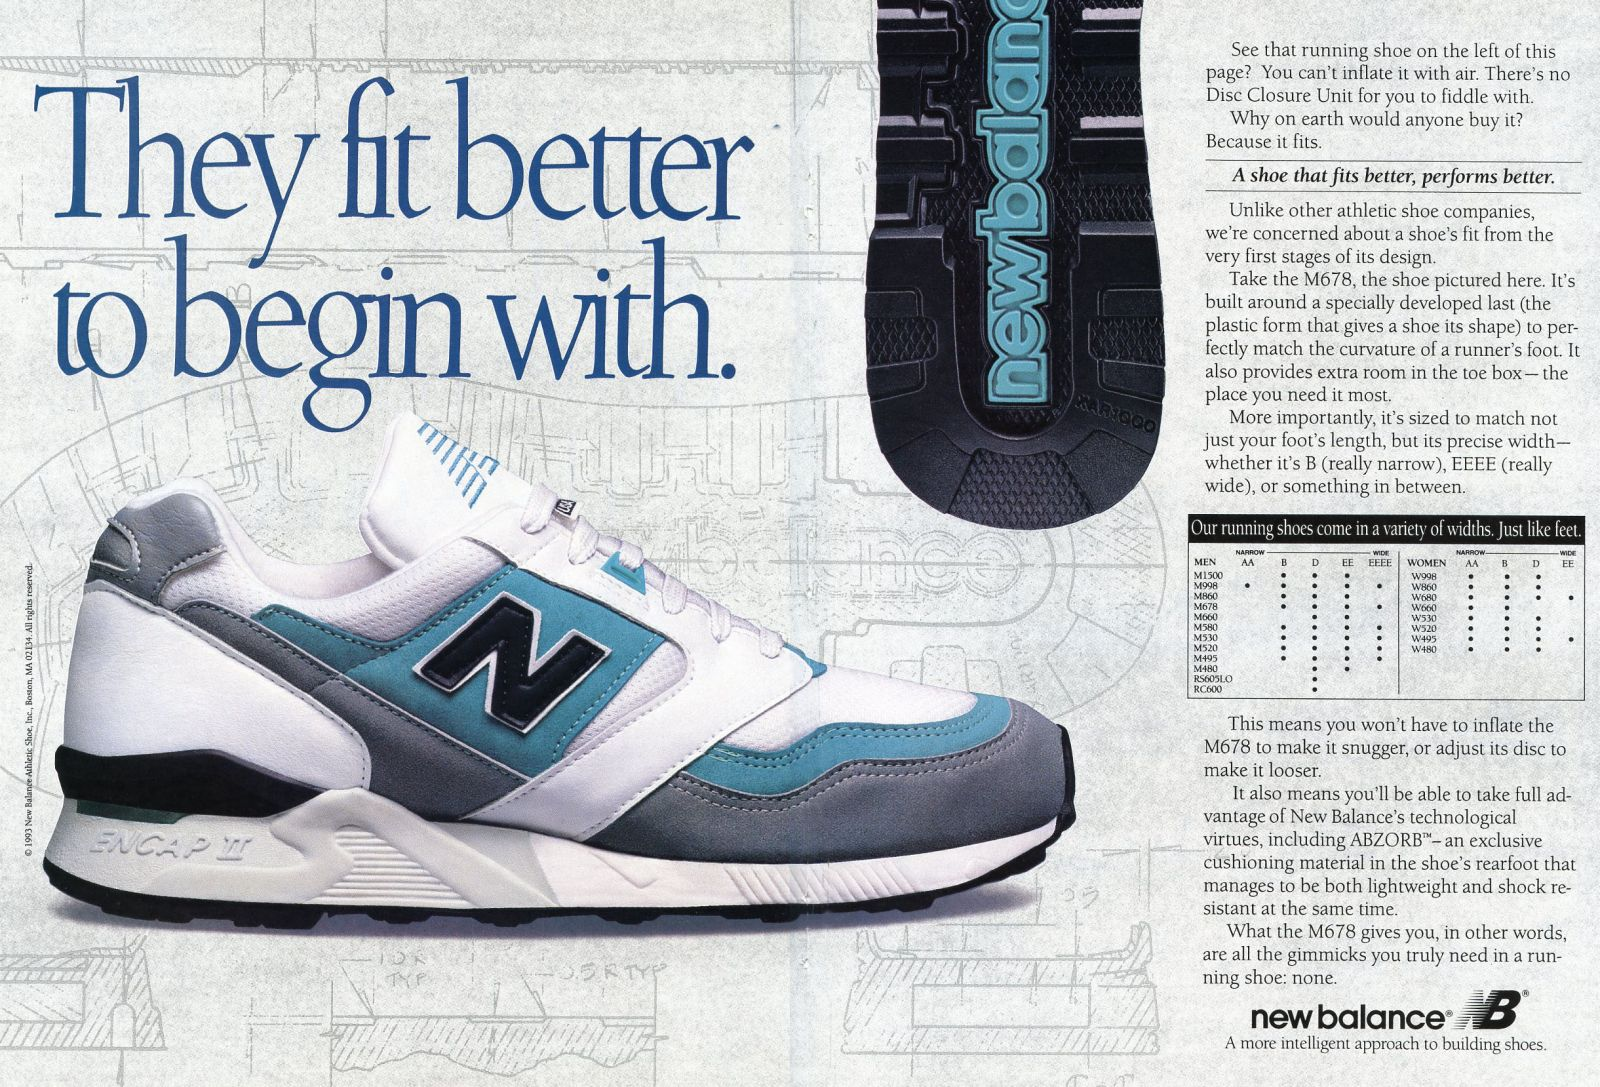 nike air jordan xx9 - Vintage Ad: New Balance Running 1993 | Sole Collector